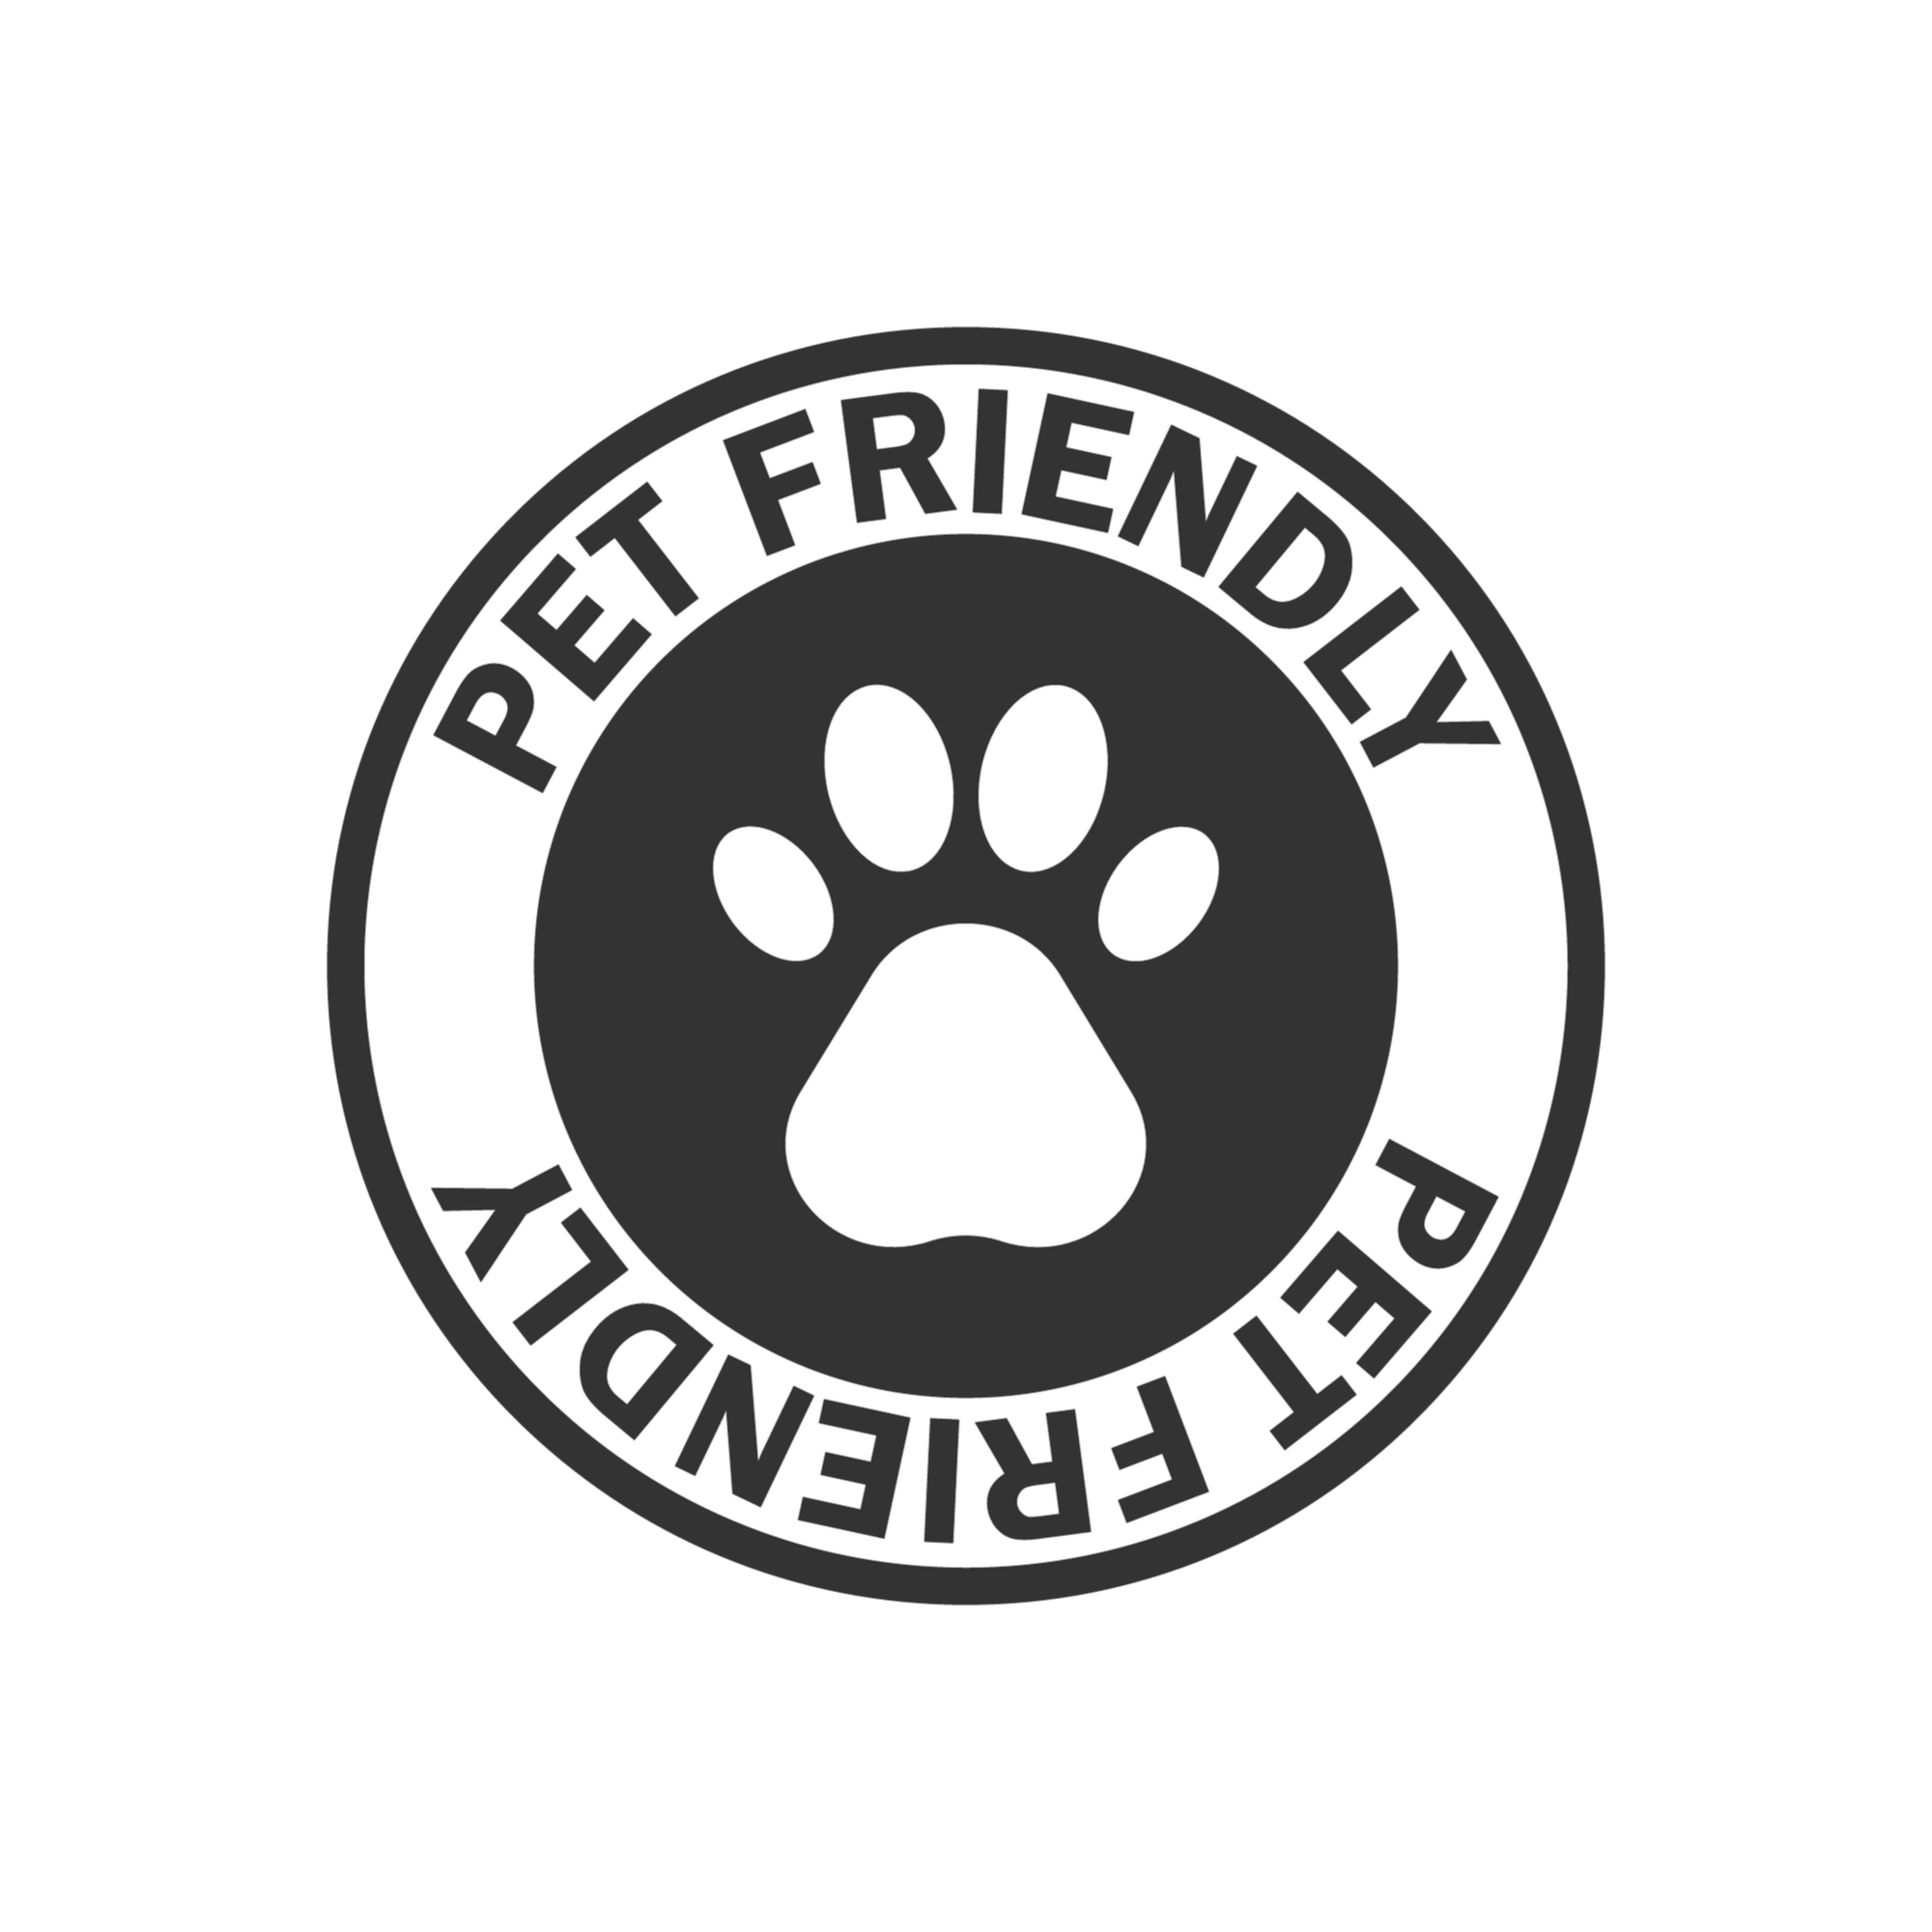 Guests are welcome to bring their fur friend on application -   Click here for more information